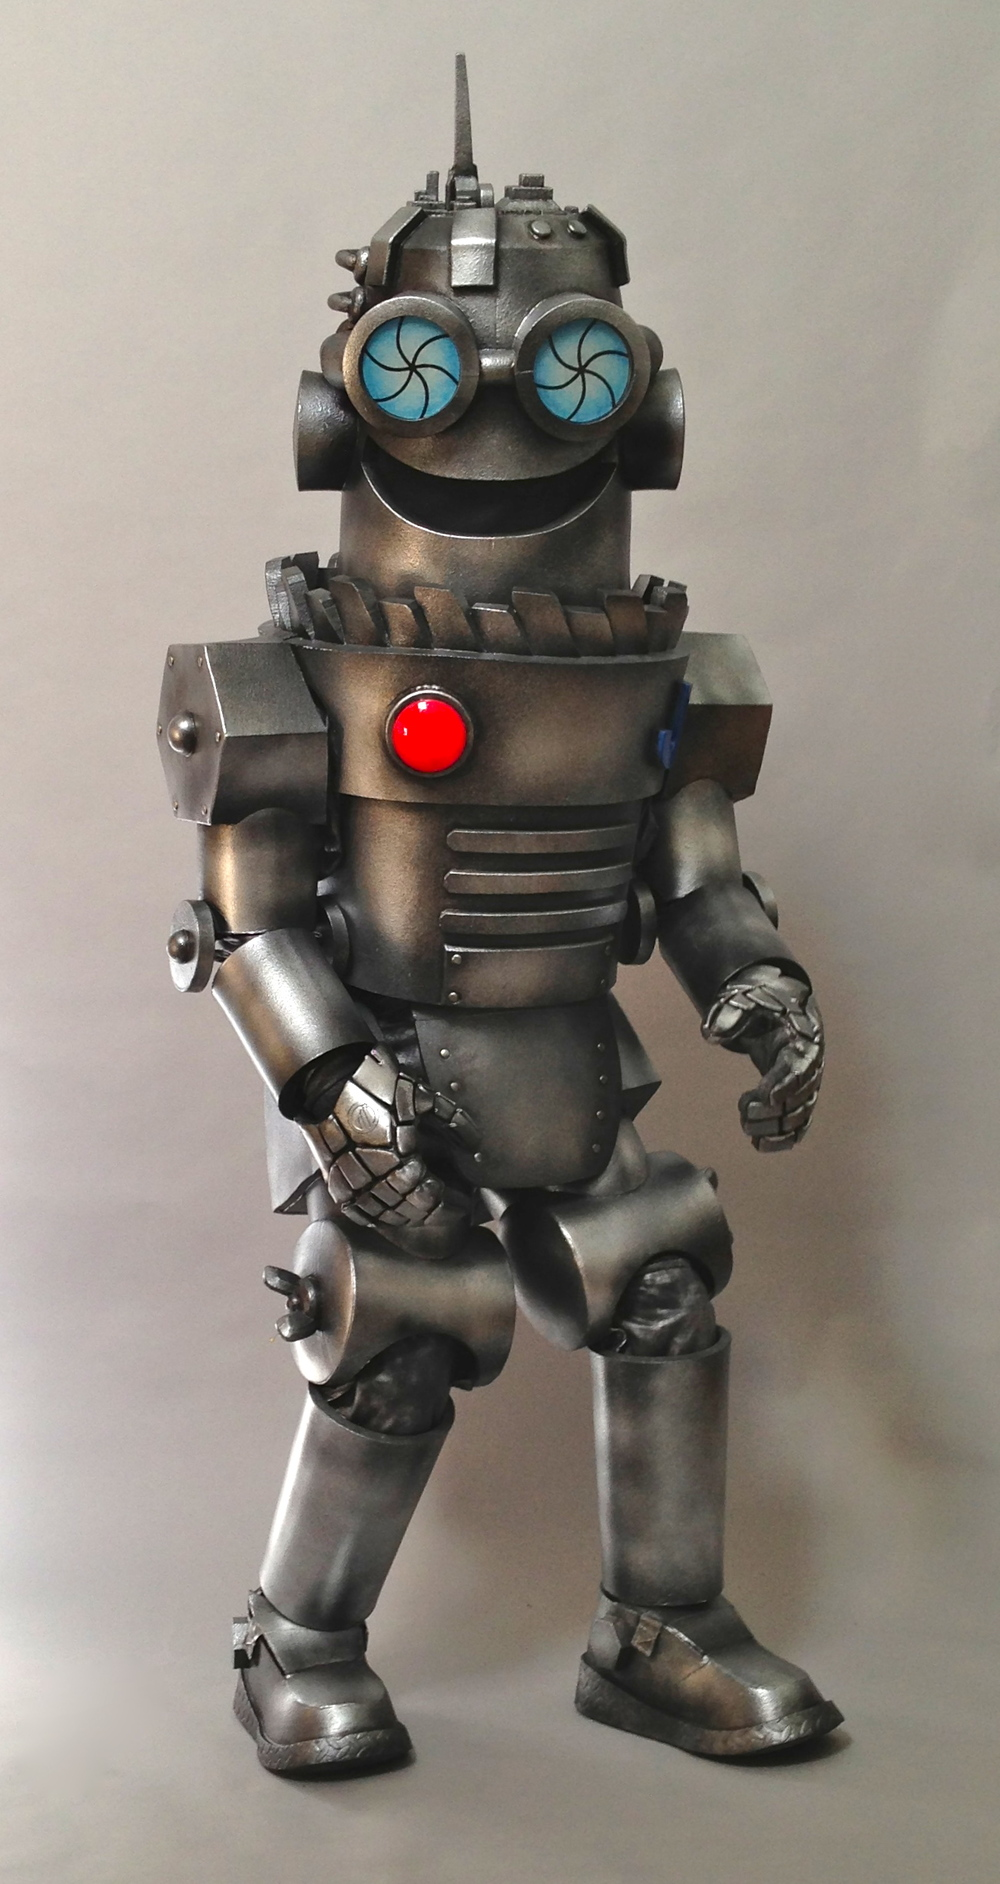 Robot costume by Matthew McAvene in costume.jpg